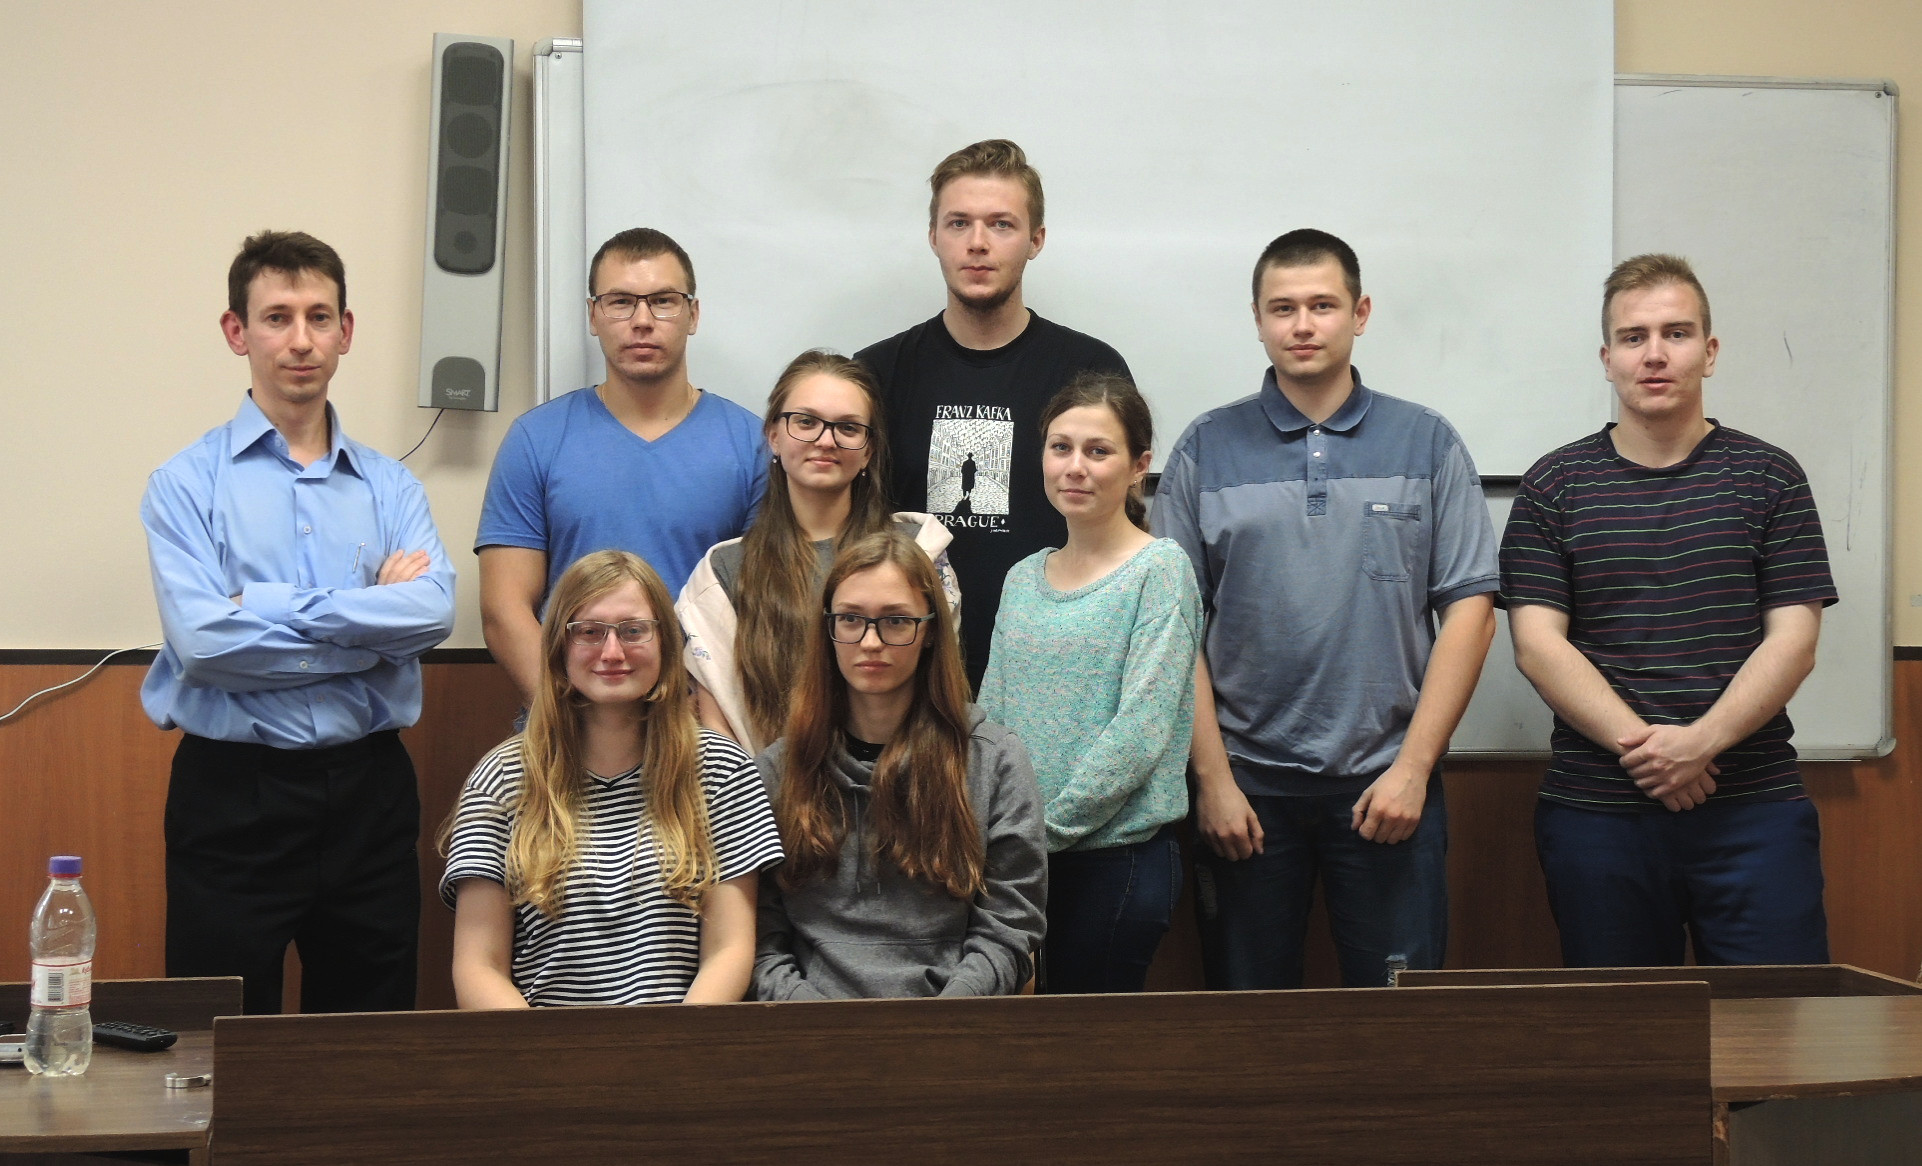 File Petrsu Wiki Students 2017 Color Jpg Wikimedia Commons